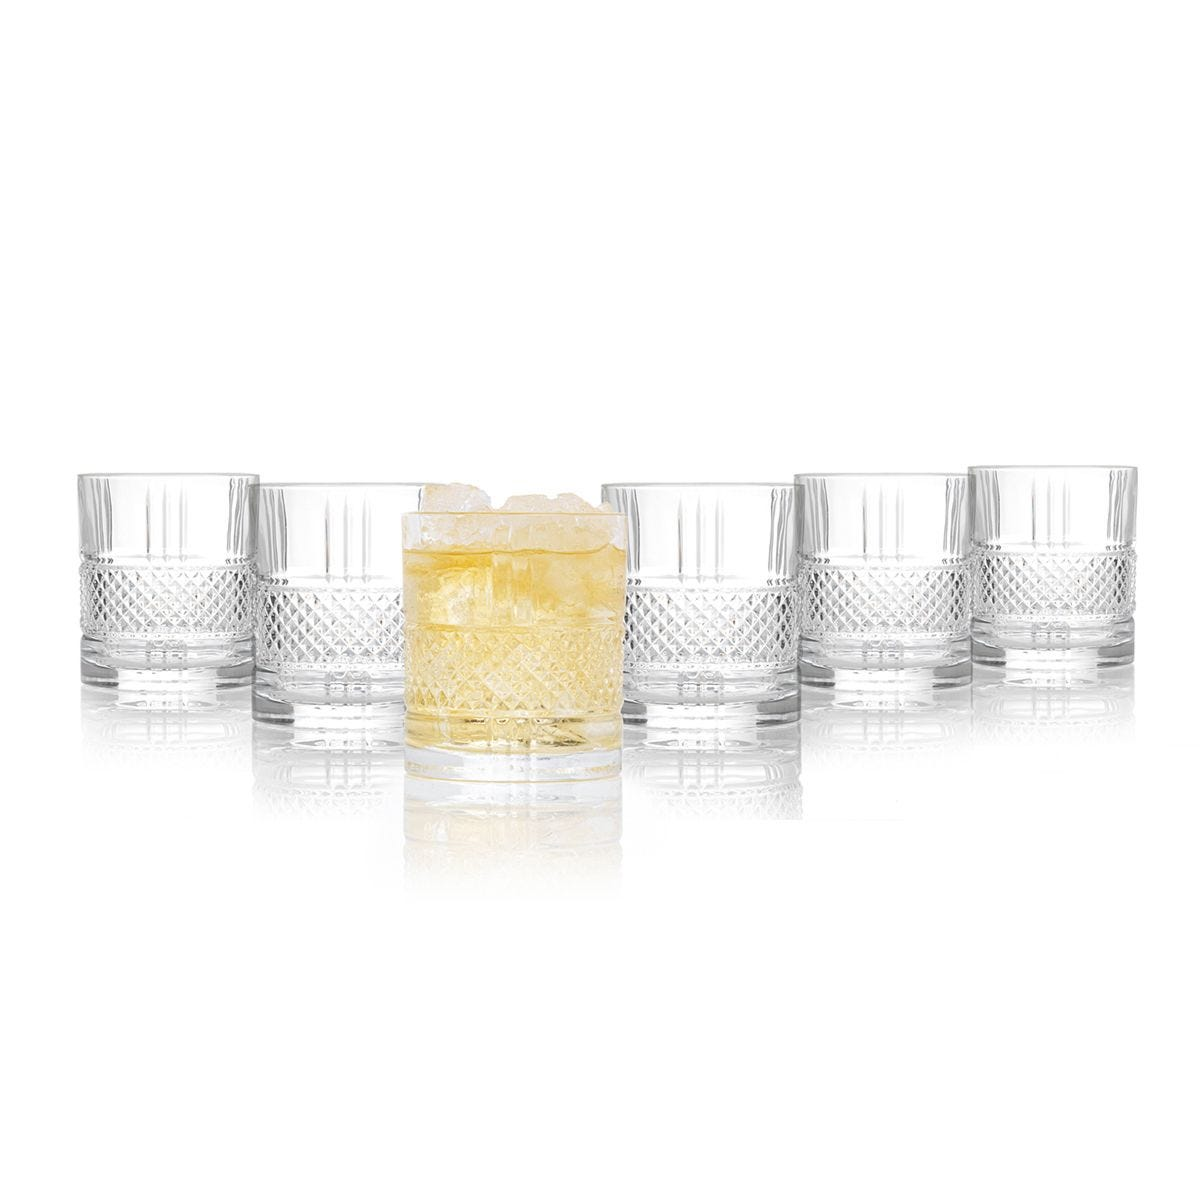 RCR Brilliante Crystal Whisky Glass Tumblers - Set of 6